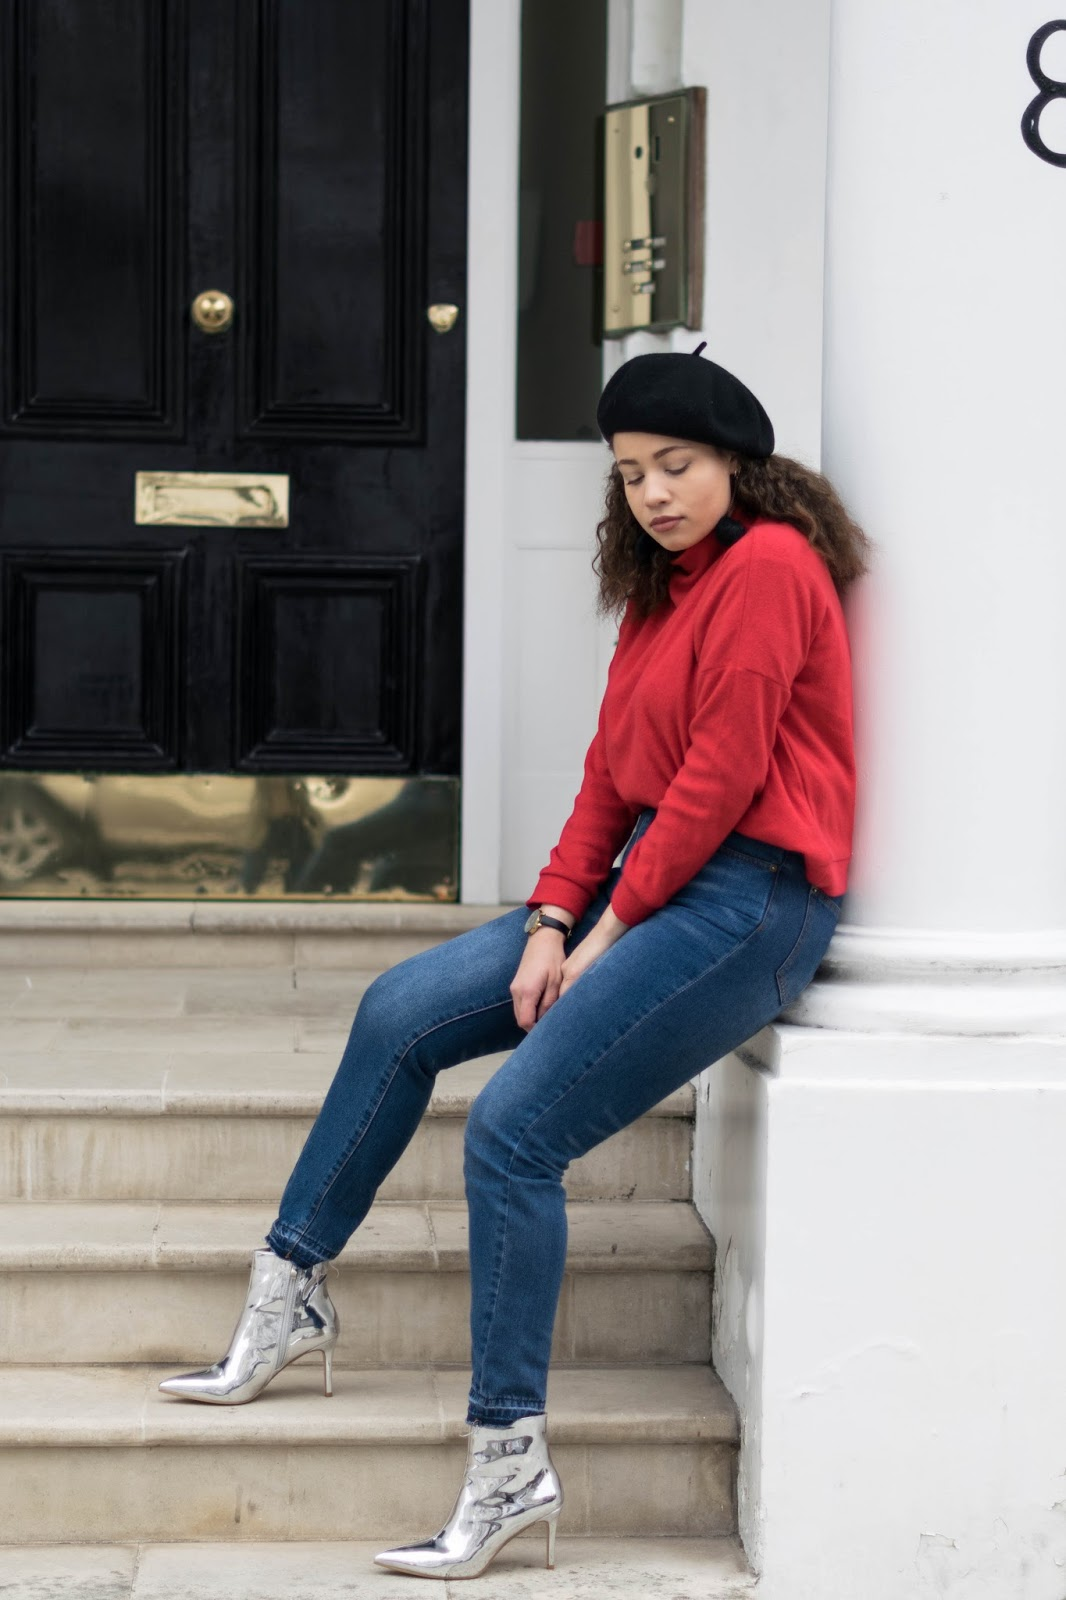 Eboni wearing a red jumper with blue jeans and the silver mirror boots from Pretty Little Thing